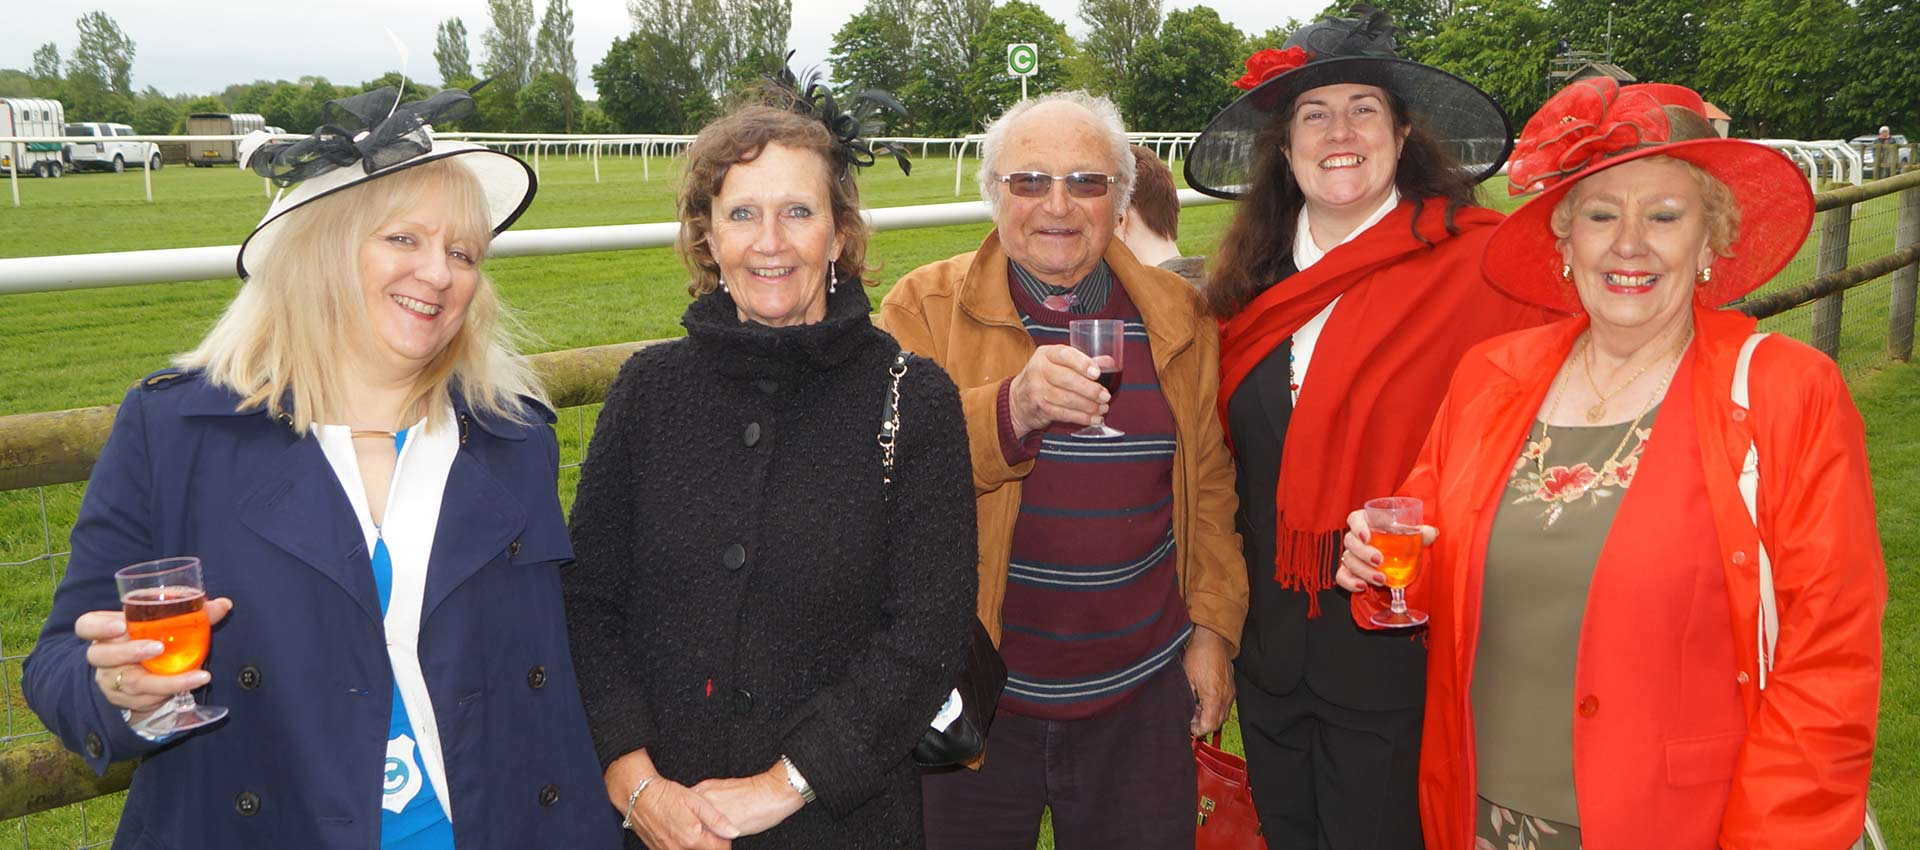 Irish Society of East Anglia day at the races